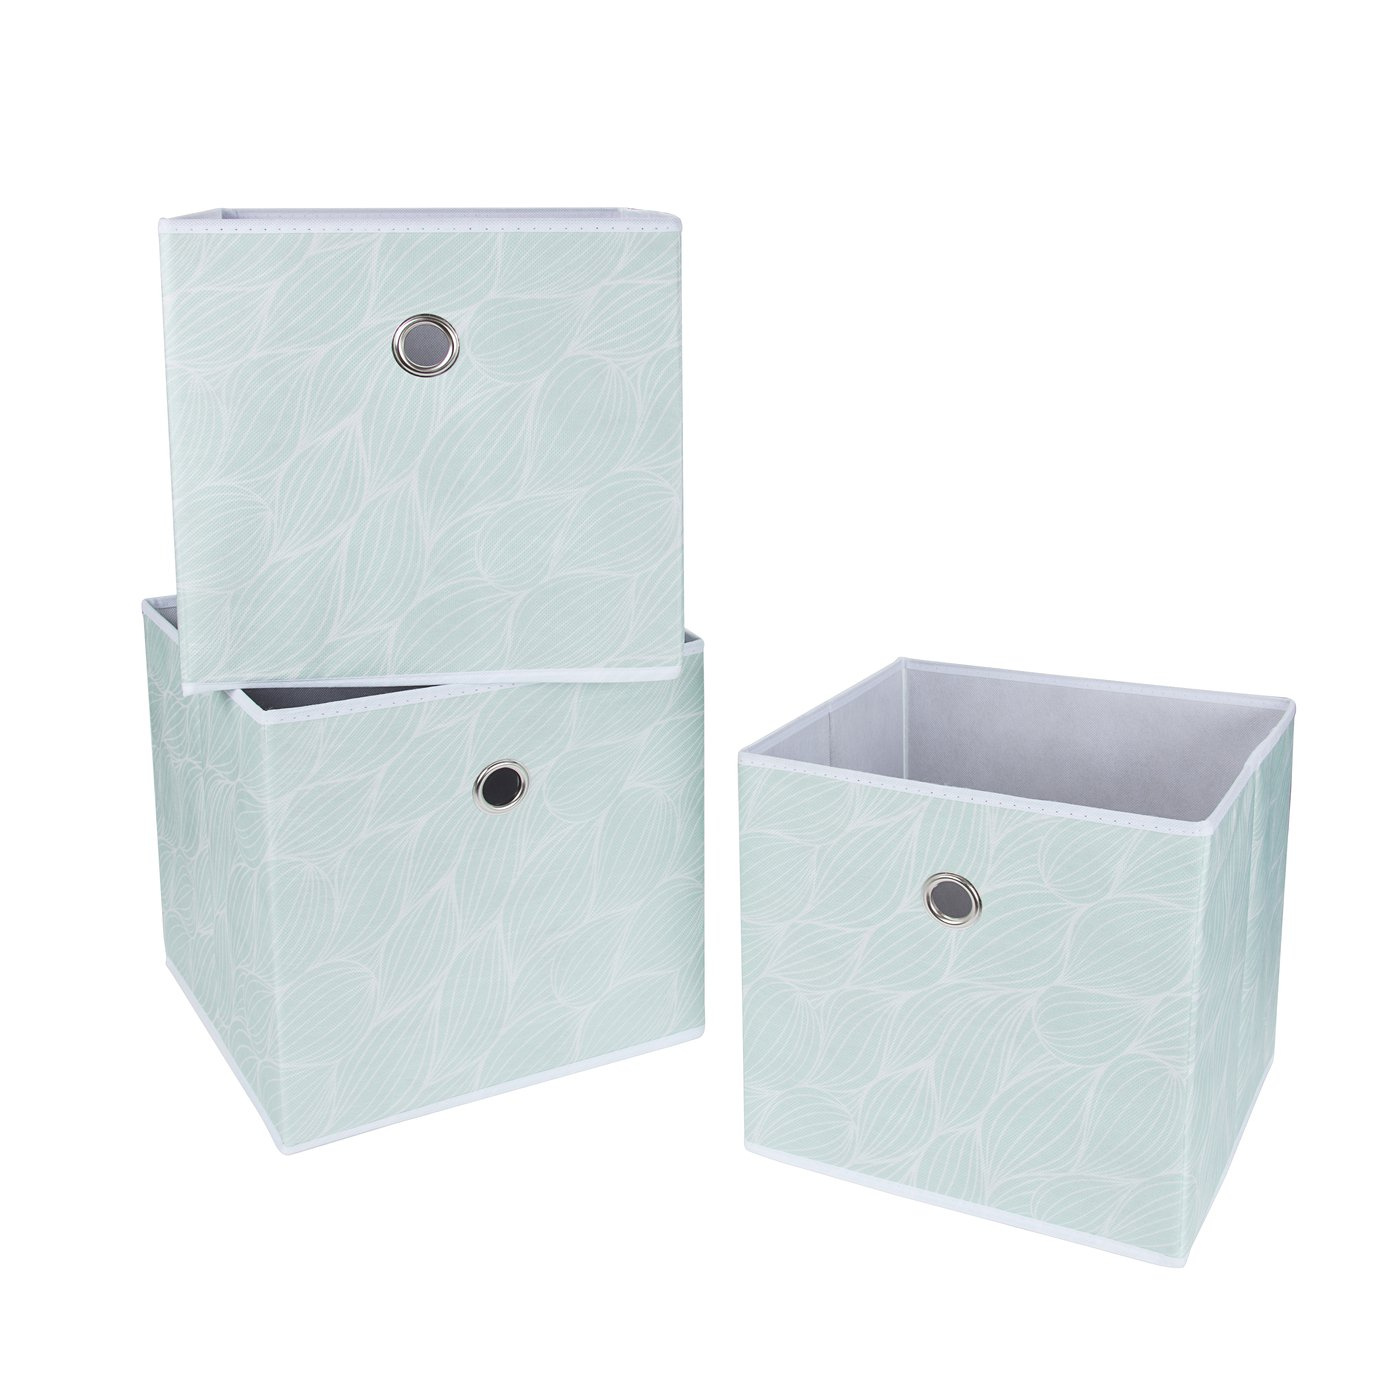 SbS Collapsible Foldable Fabric Storage Boxes, Cubes, Bins, Baskets. Mint Green Leaf pattern (3 Pack). Each Storage Bin Measures 11.8 inches on all sides